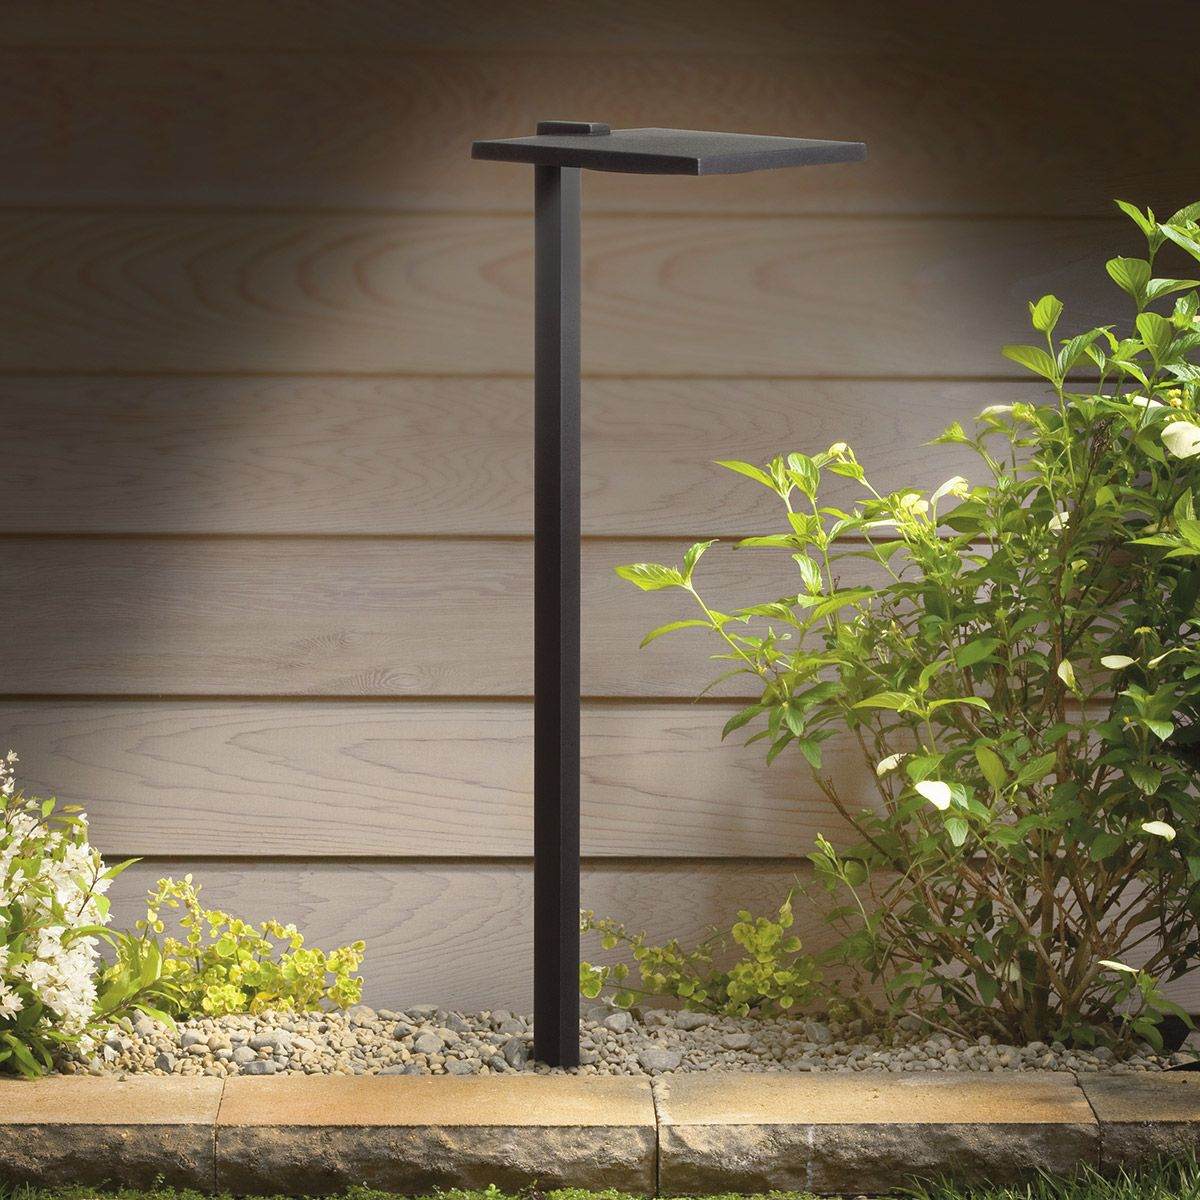 12v Shallow Shade Path Light By Kichler 15805bkt27r Garden Path Lighting Solar Lights Garden Modern Landscape Lighting